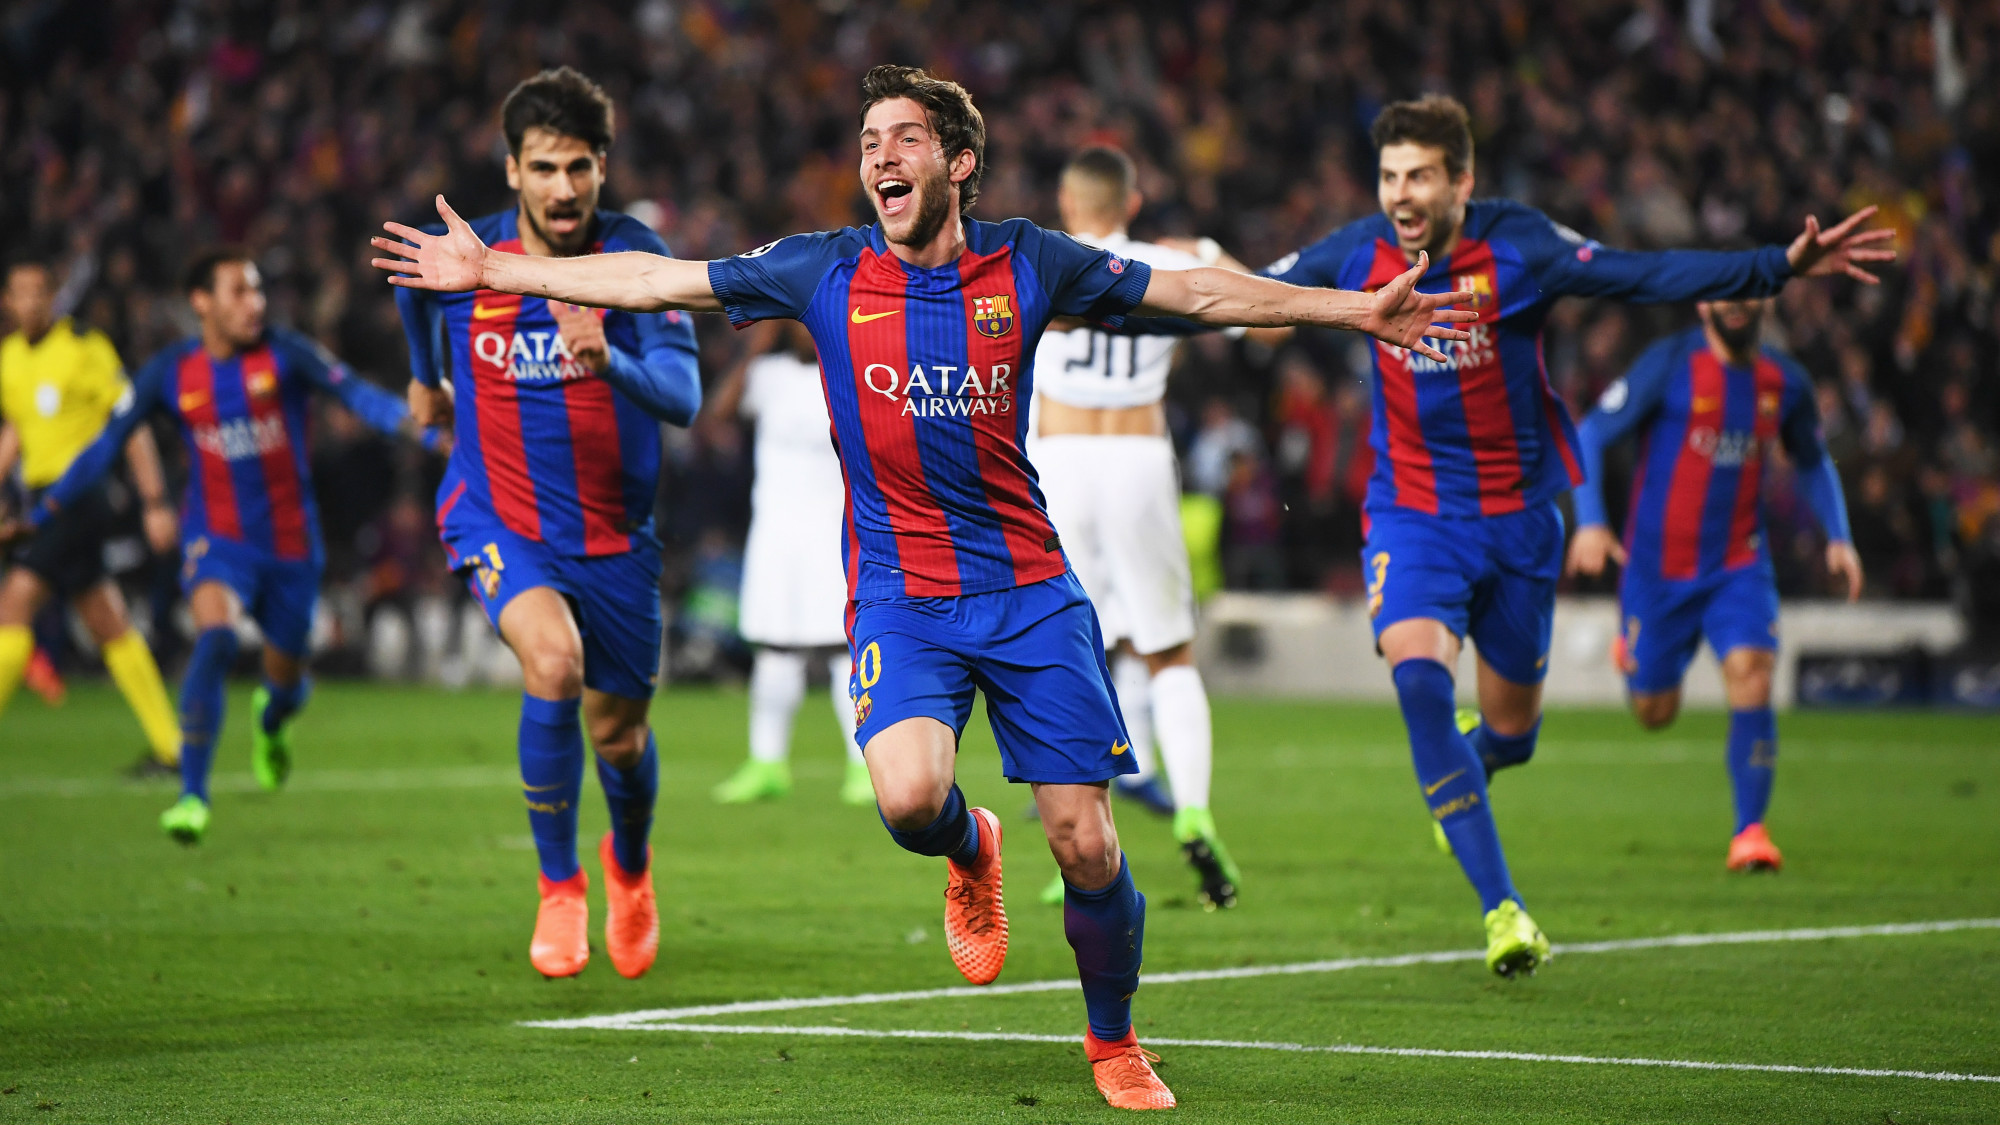 Explained: What is a remontada? Why Spanish word for comeback is tied to  Barcelona vs PSG | Goal.com